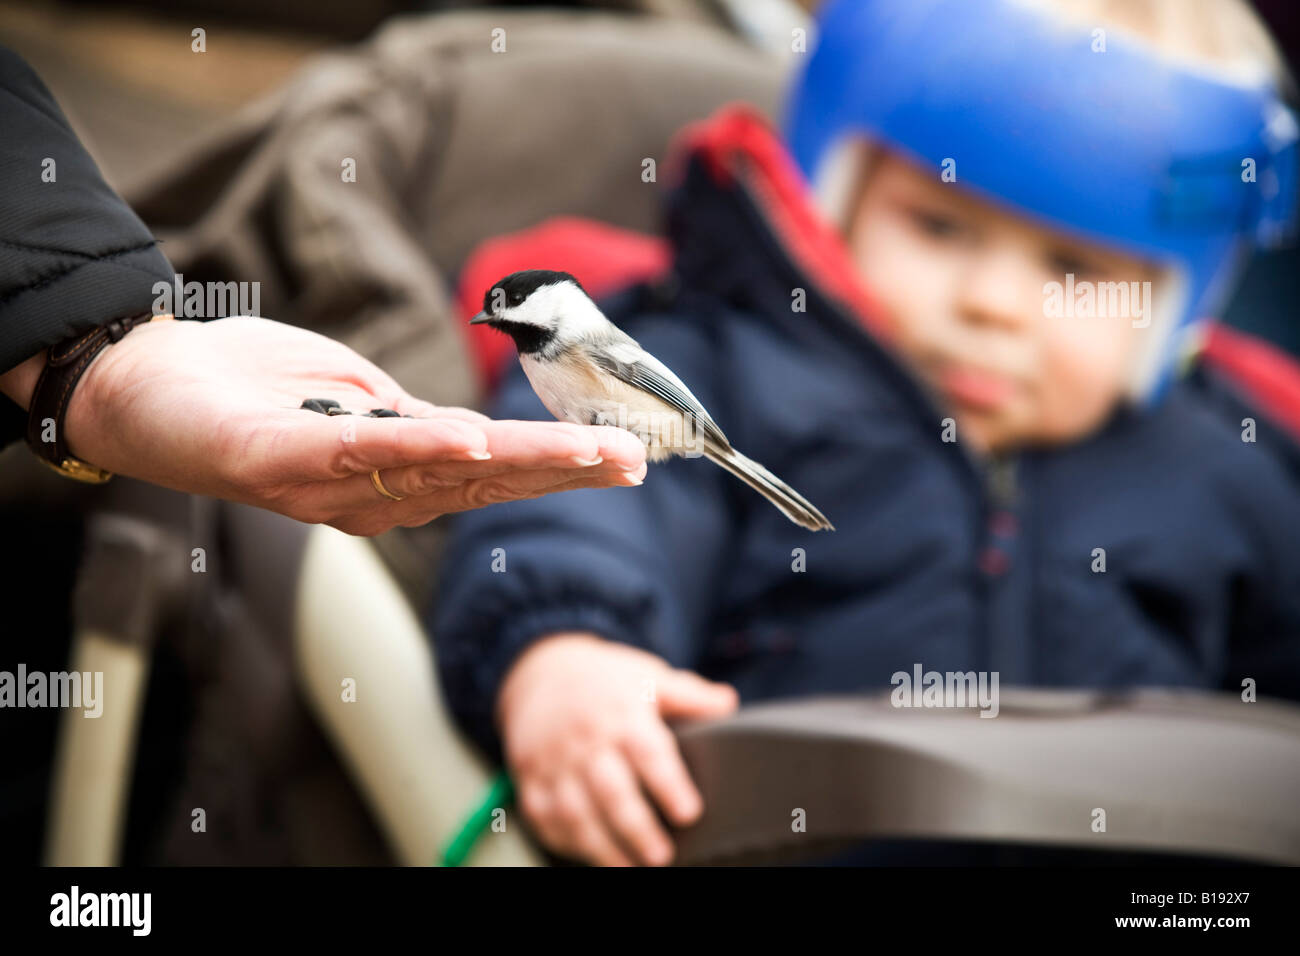 A bird eating out of a person's hand Stock Photo